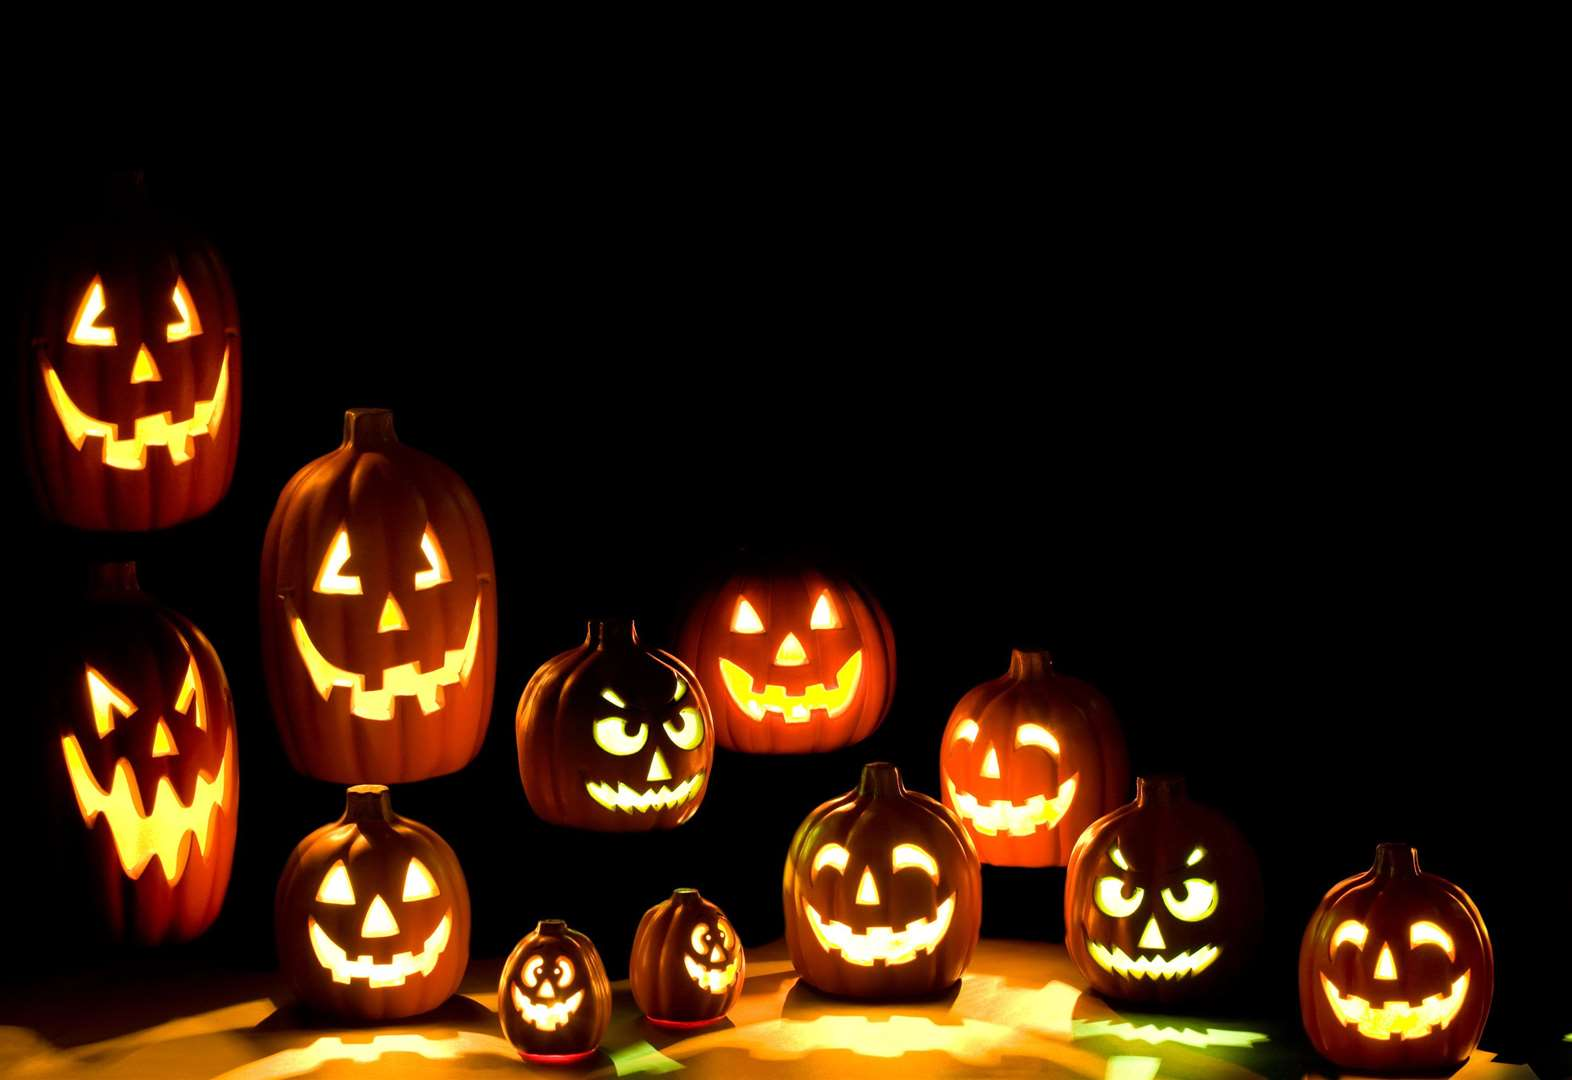 A guide to the spooktacular events this Halloween